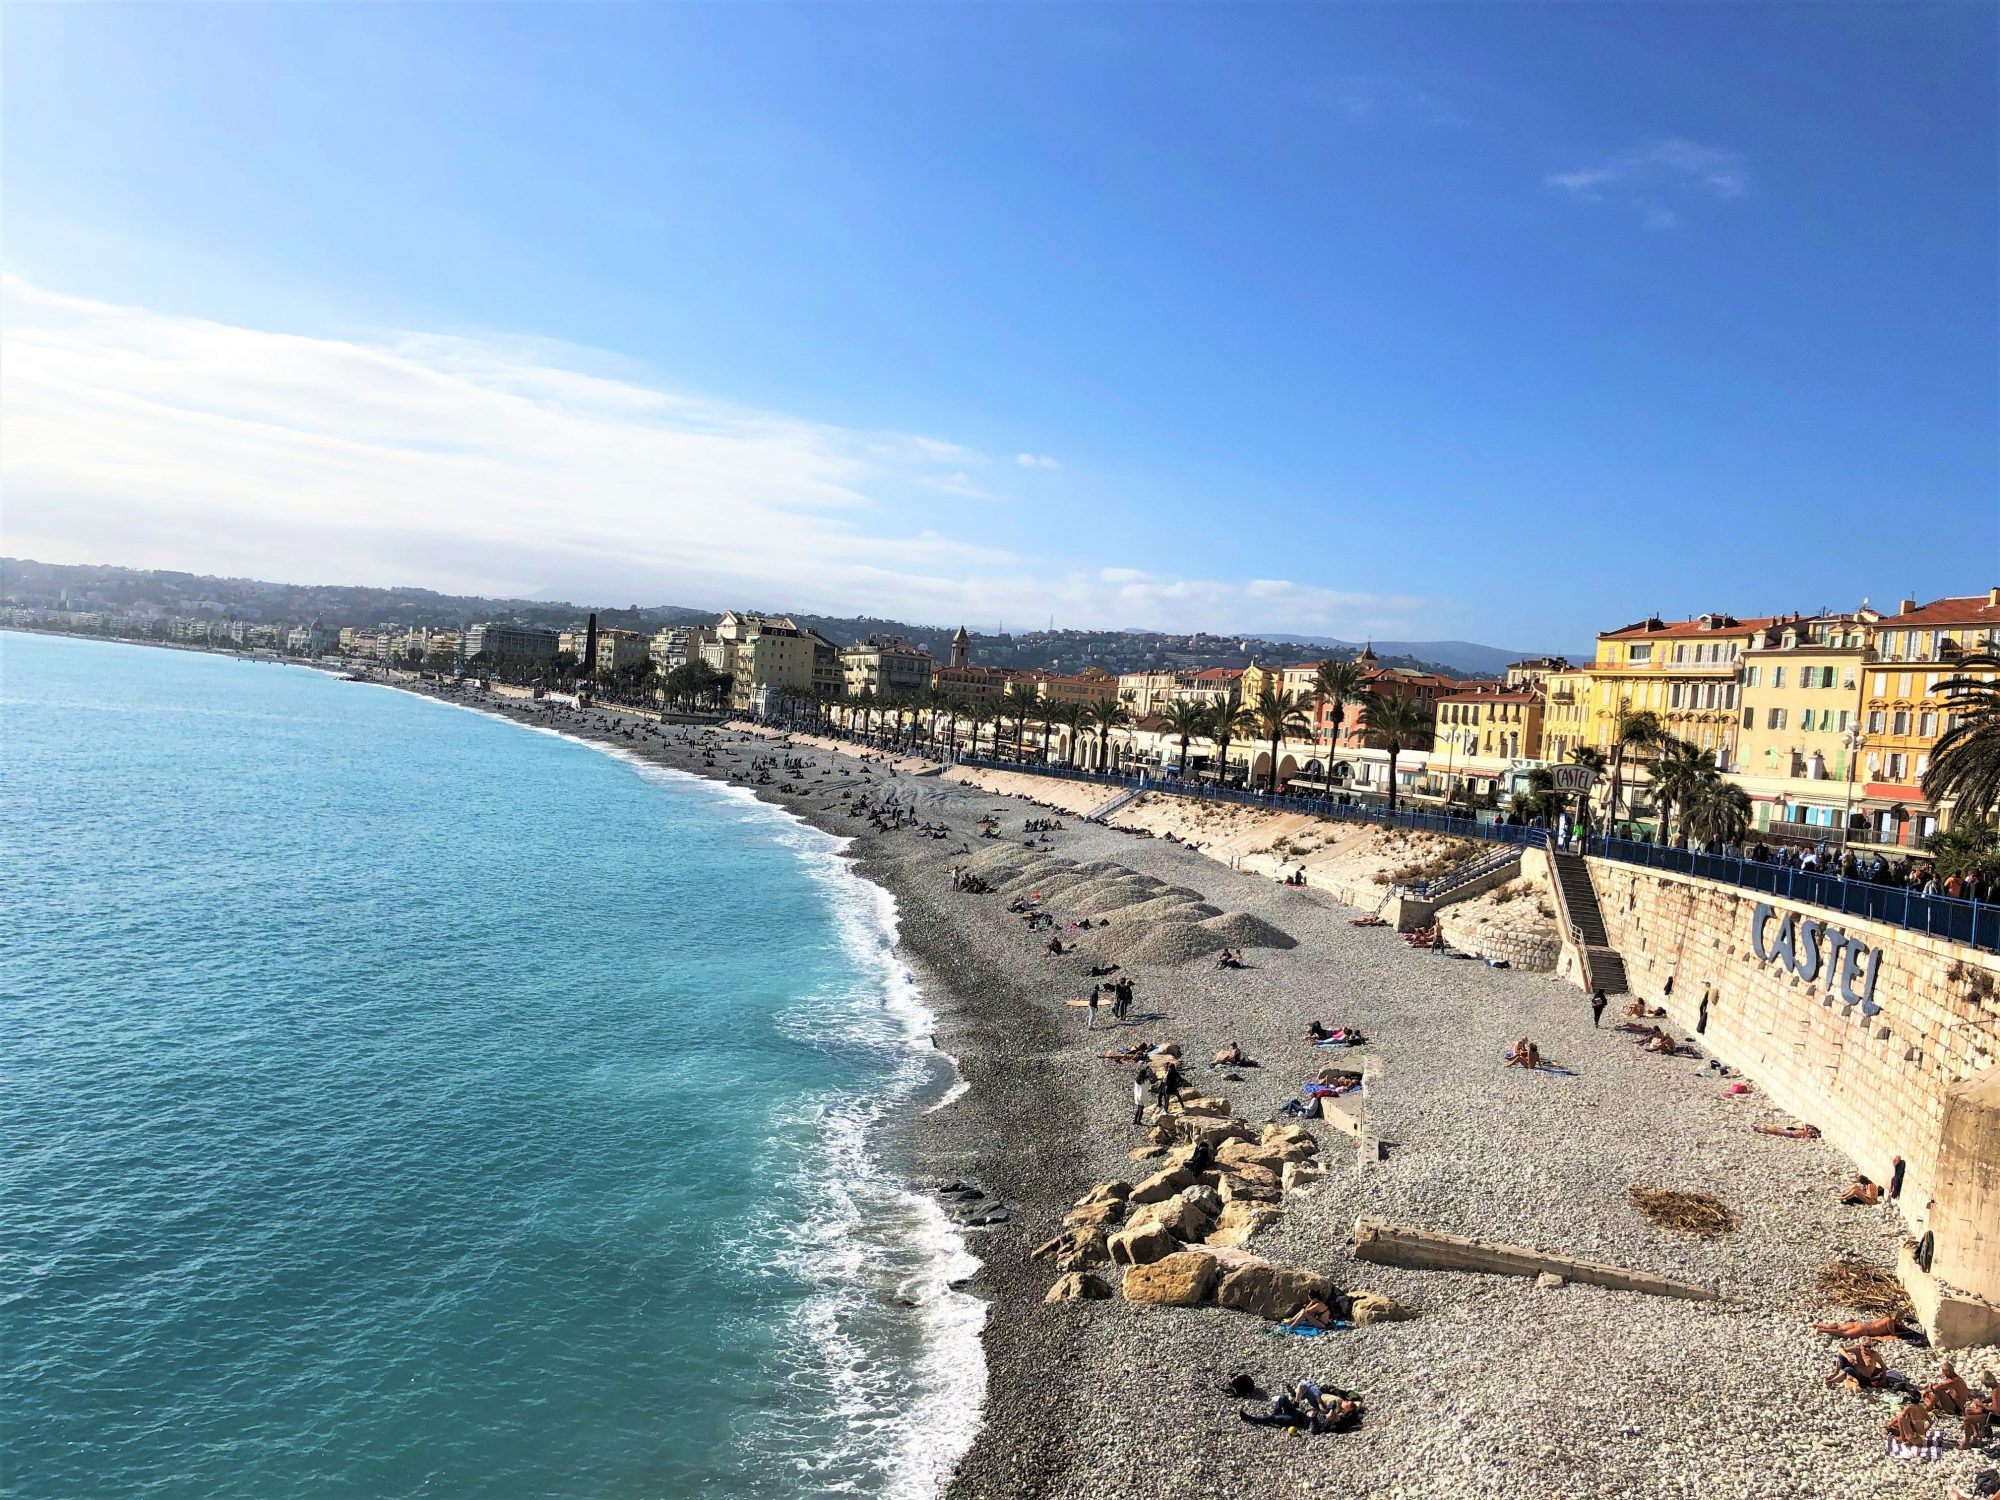 One day in Nice – top things to do